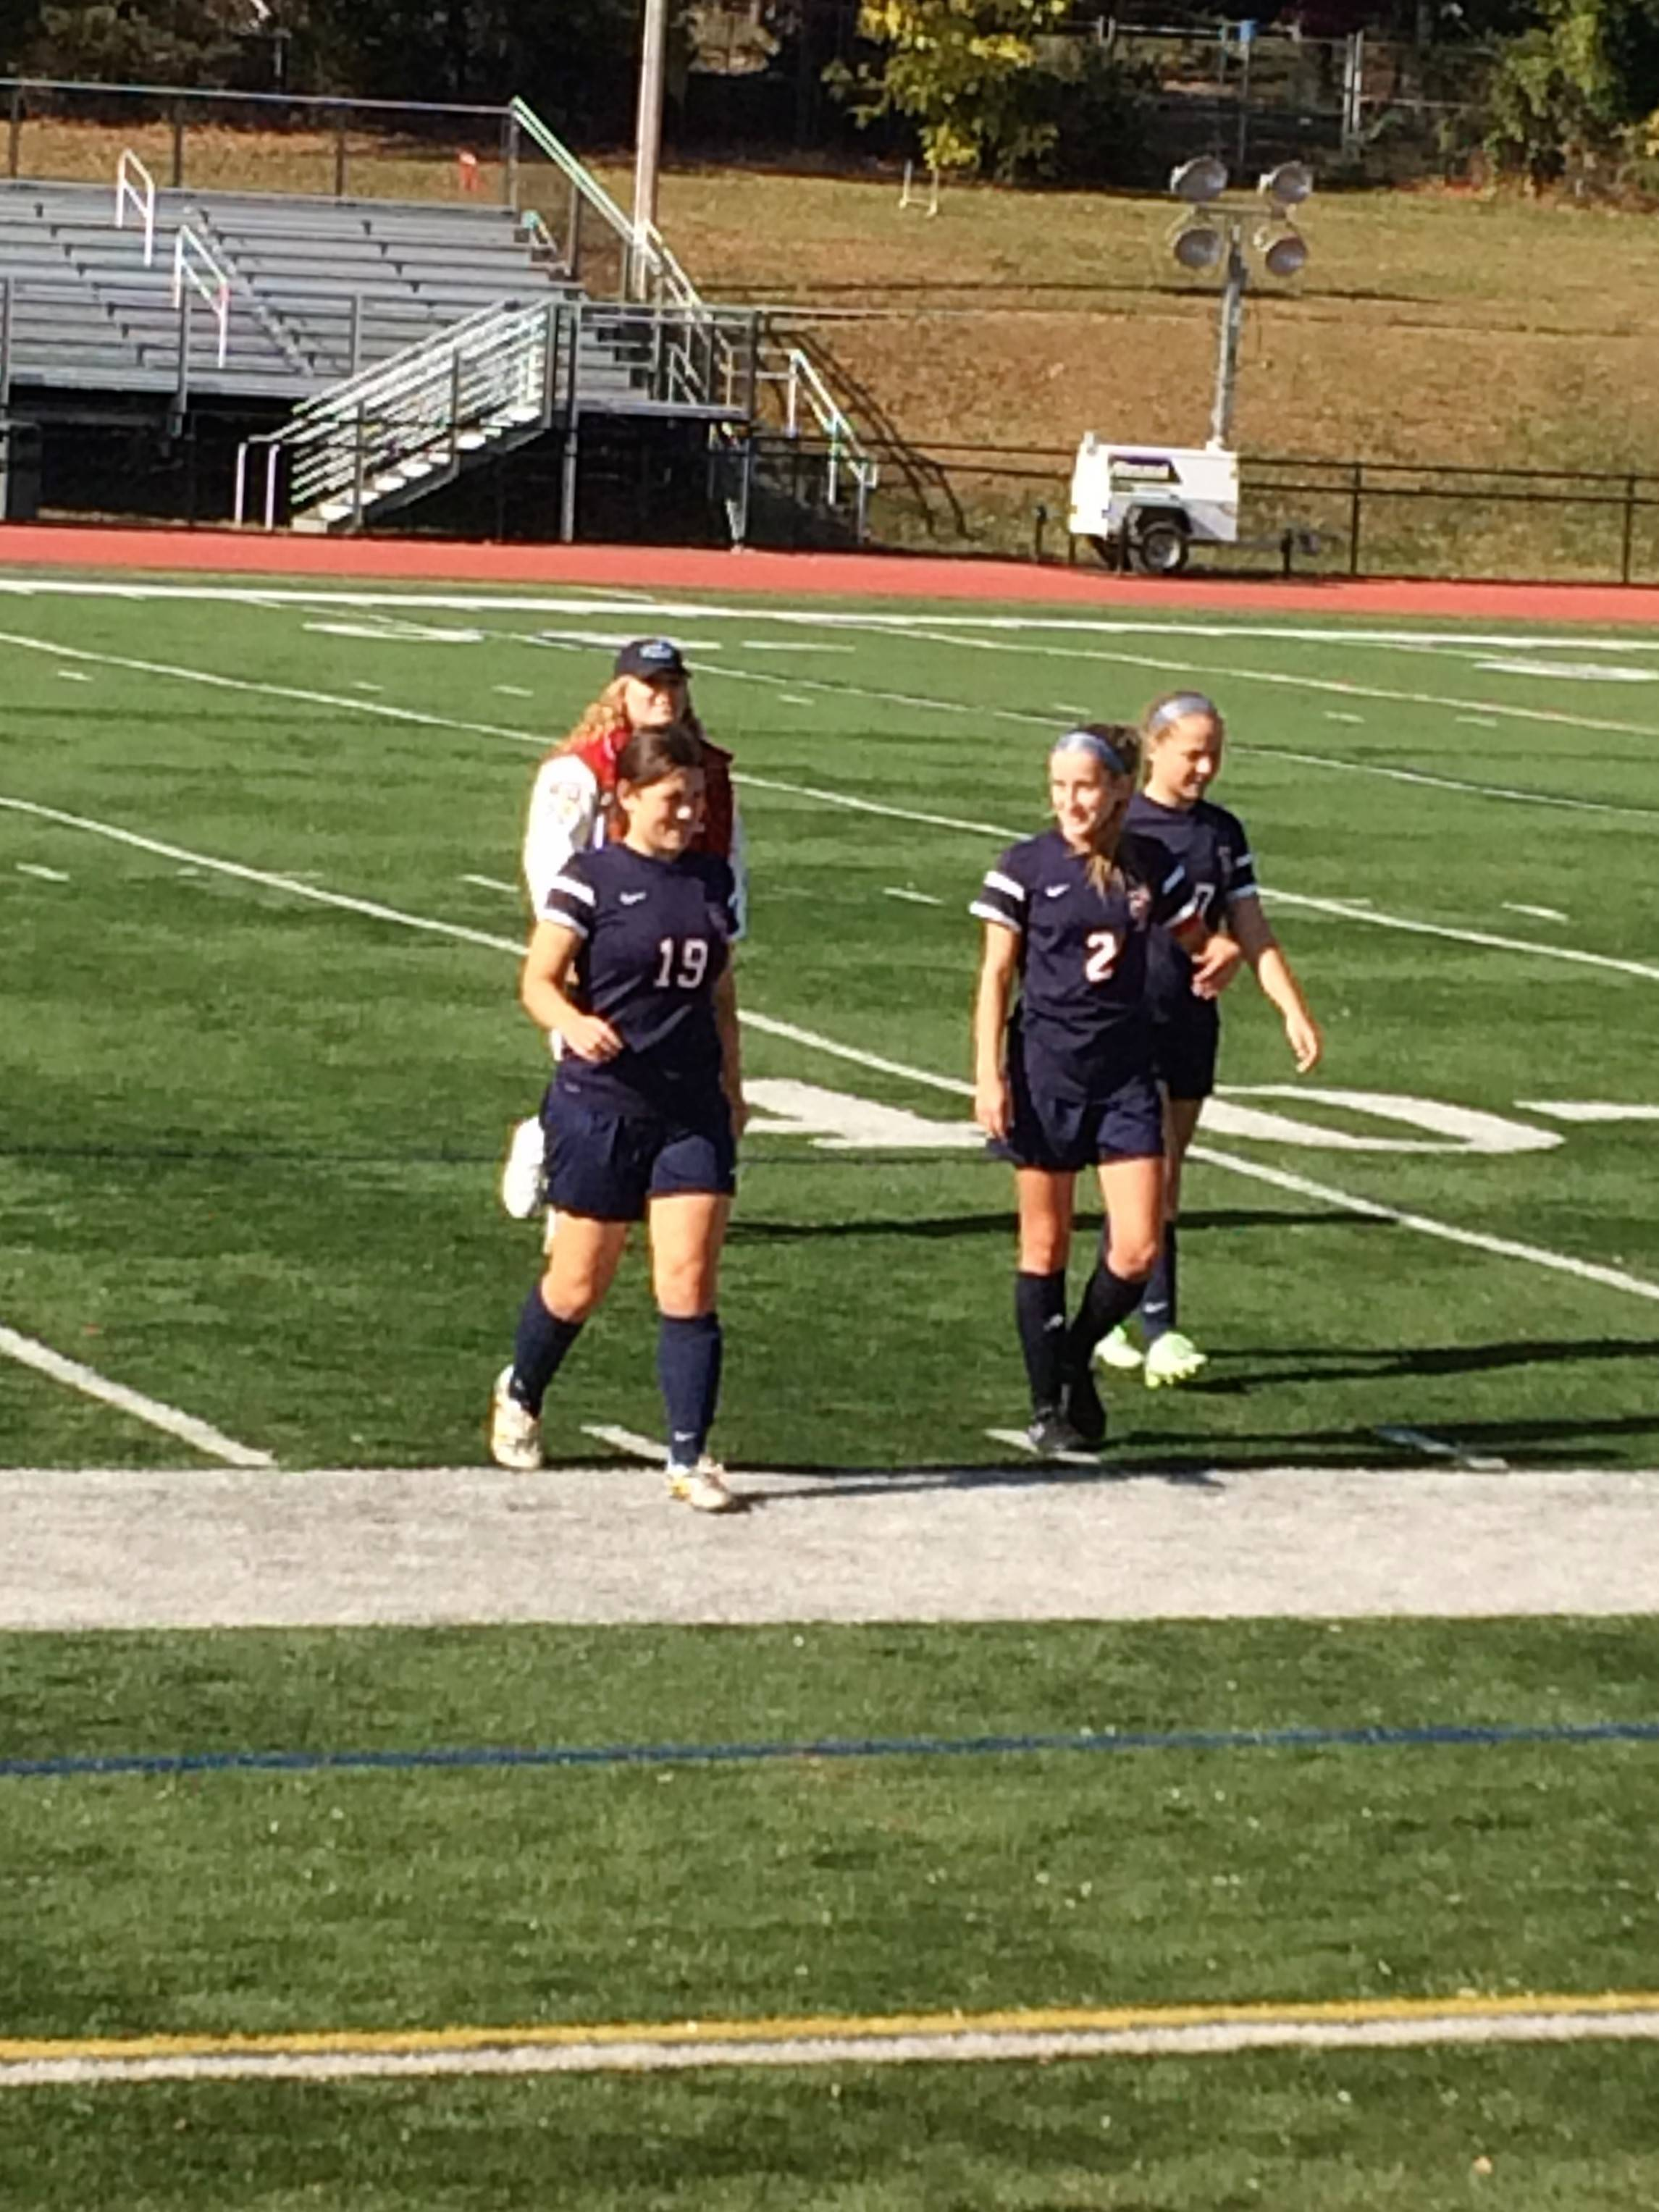 ba79517552062b74fad5_girlsoccer_captains.jpg